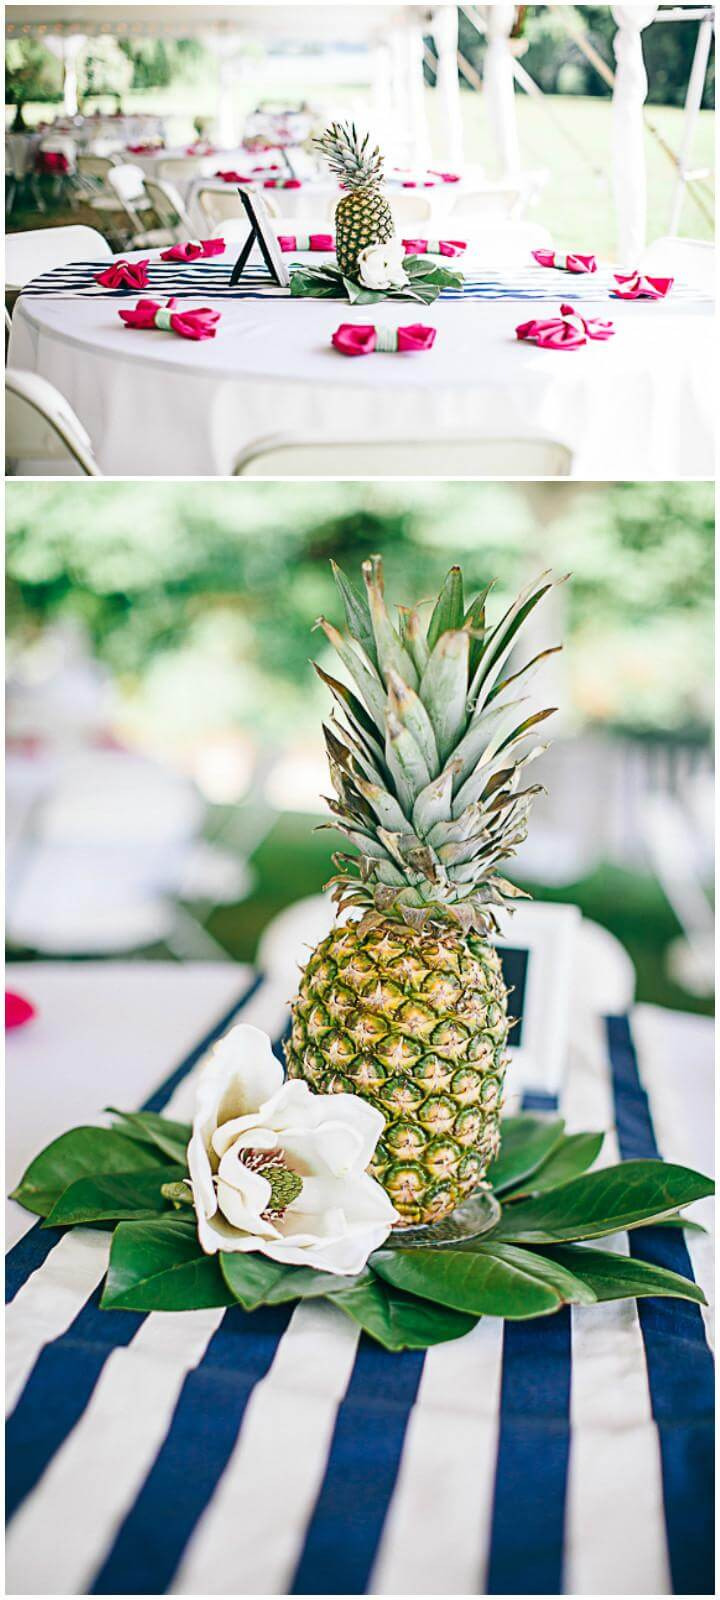 DIY Pineapple Graduation Party Flare or Centerpiece